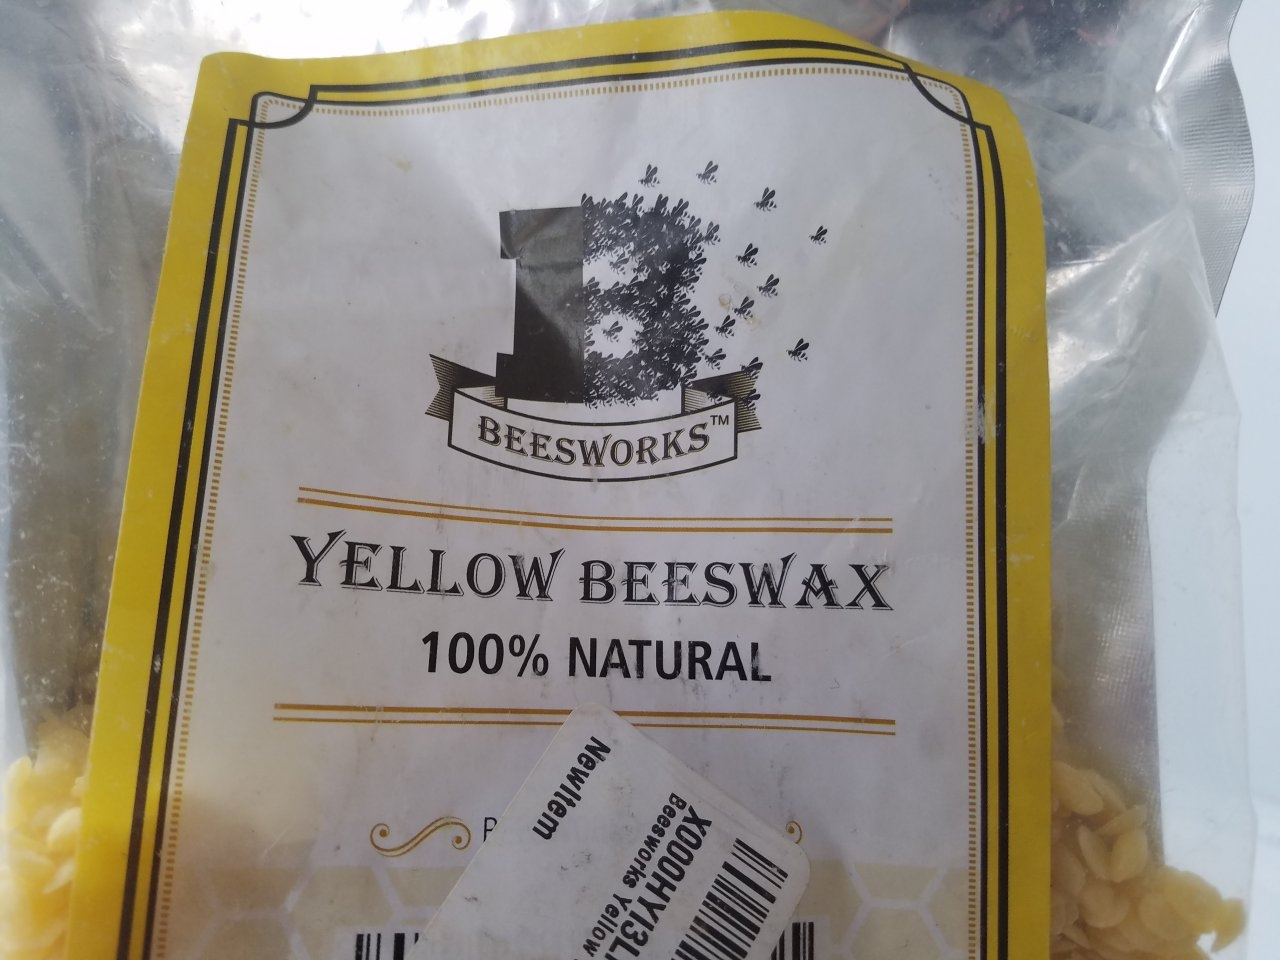 Beeswax pellets